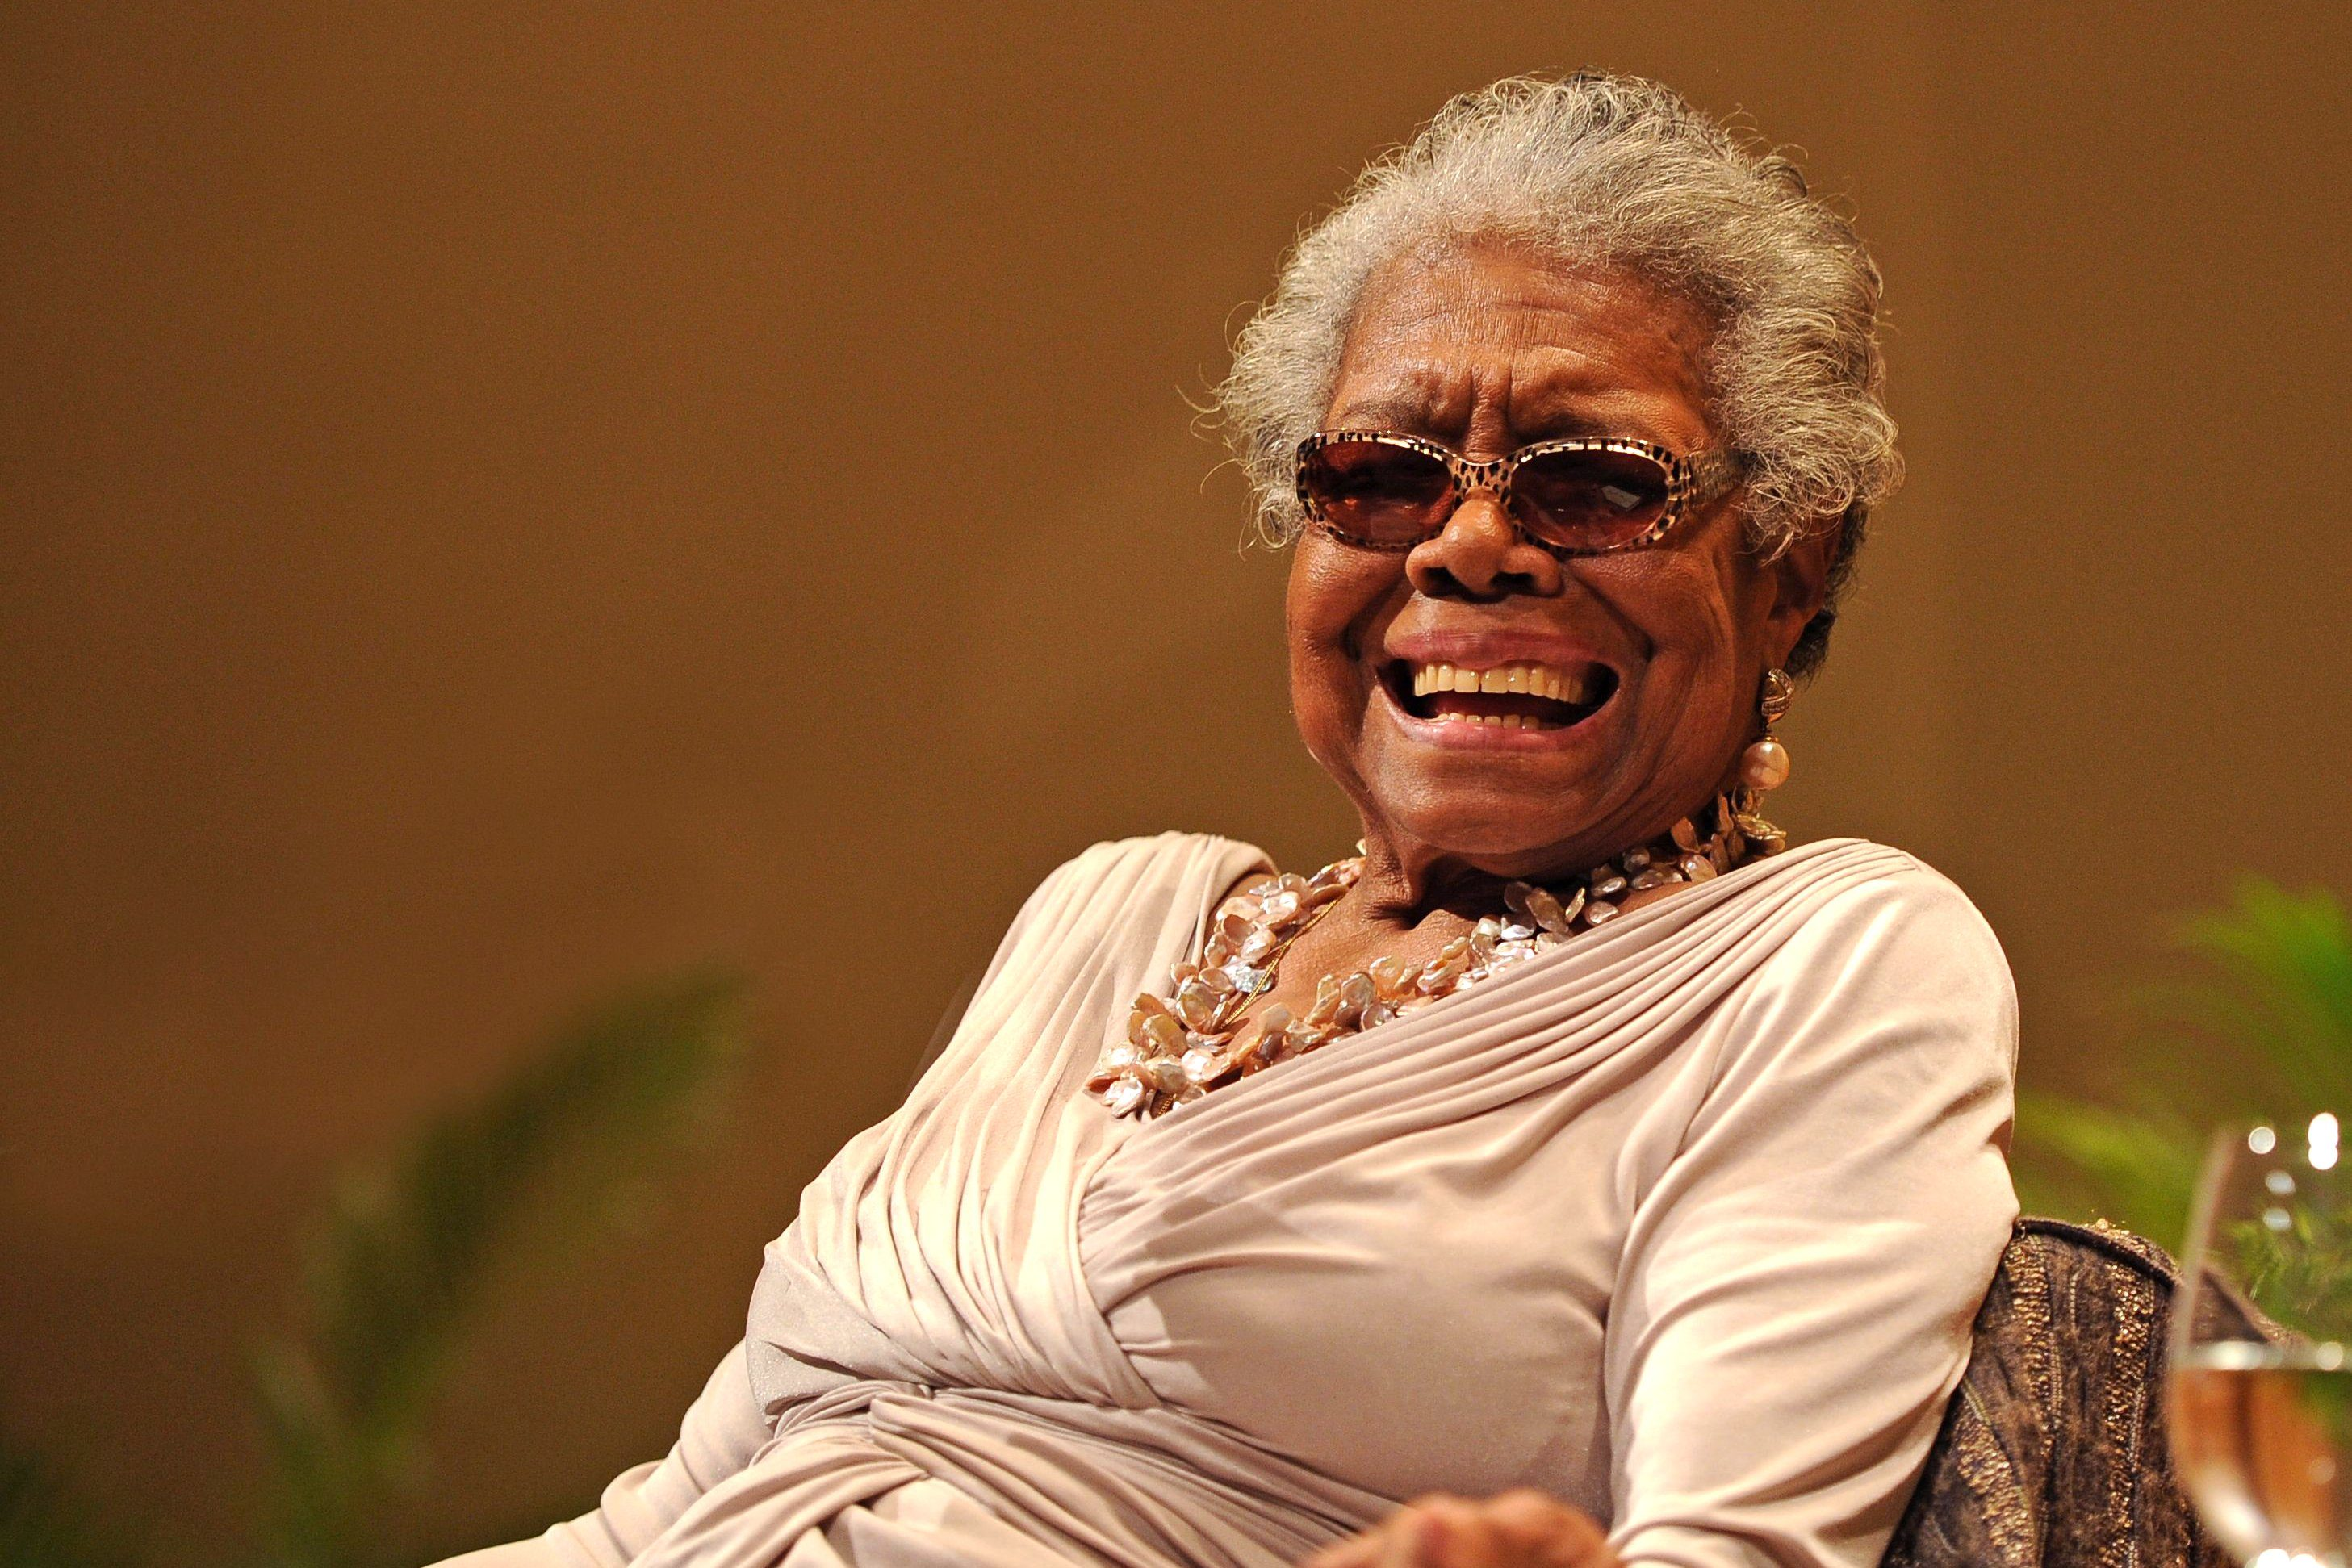 Mandatory Credit: Photo by Jeff Daly/Invision/AP/Shutterstock (9084077b) Dr. Maya Angelou speaks on race relations at Congregation B'nai Israel and Ebenezer Baptist Church on in Boca Raton, Florida Dr. Maya Angelou - Florida, Boca Raton, USA